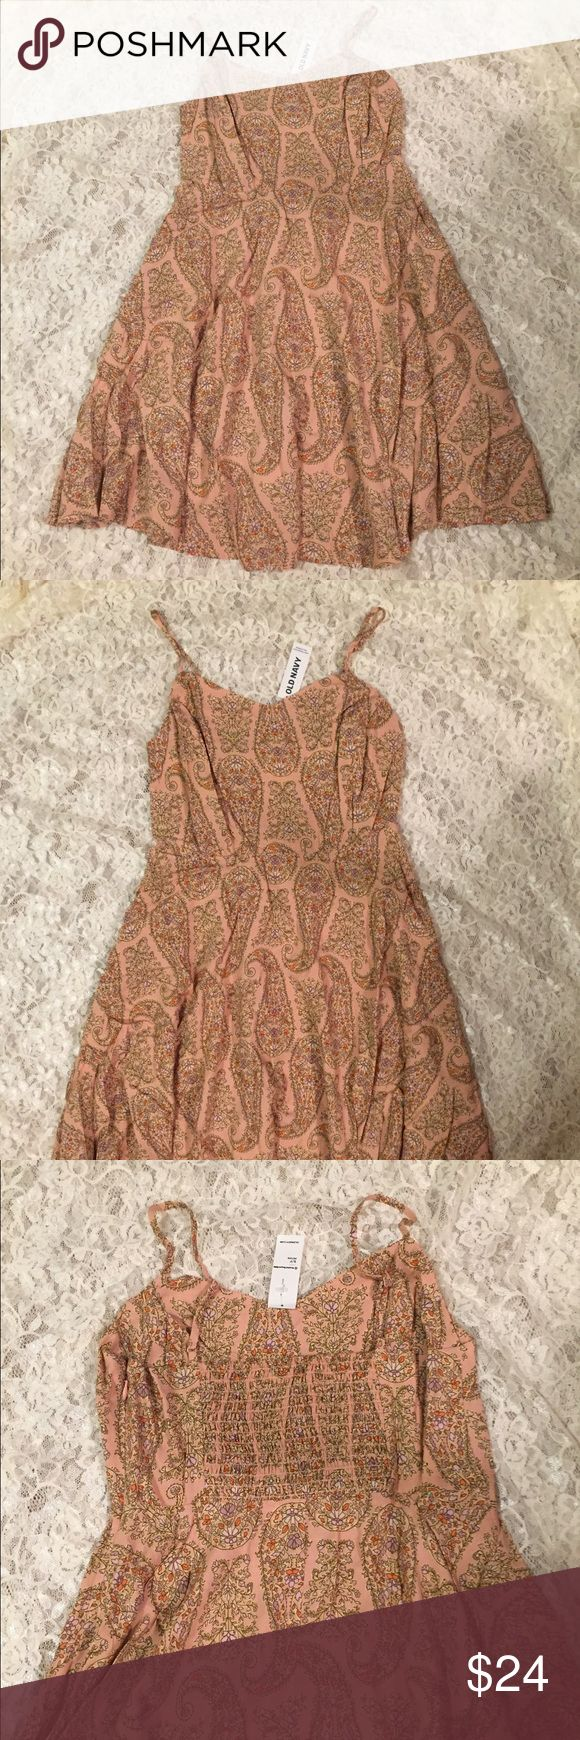 Old Navy Cami Dress New with Tag! Size is S petite. Old Navy Dresses